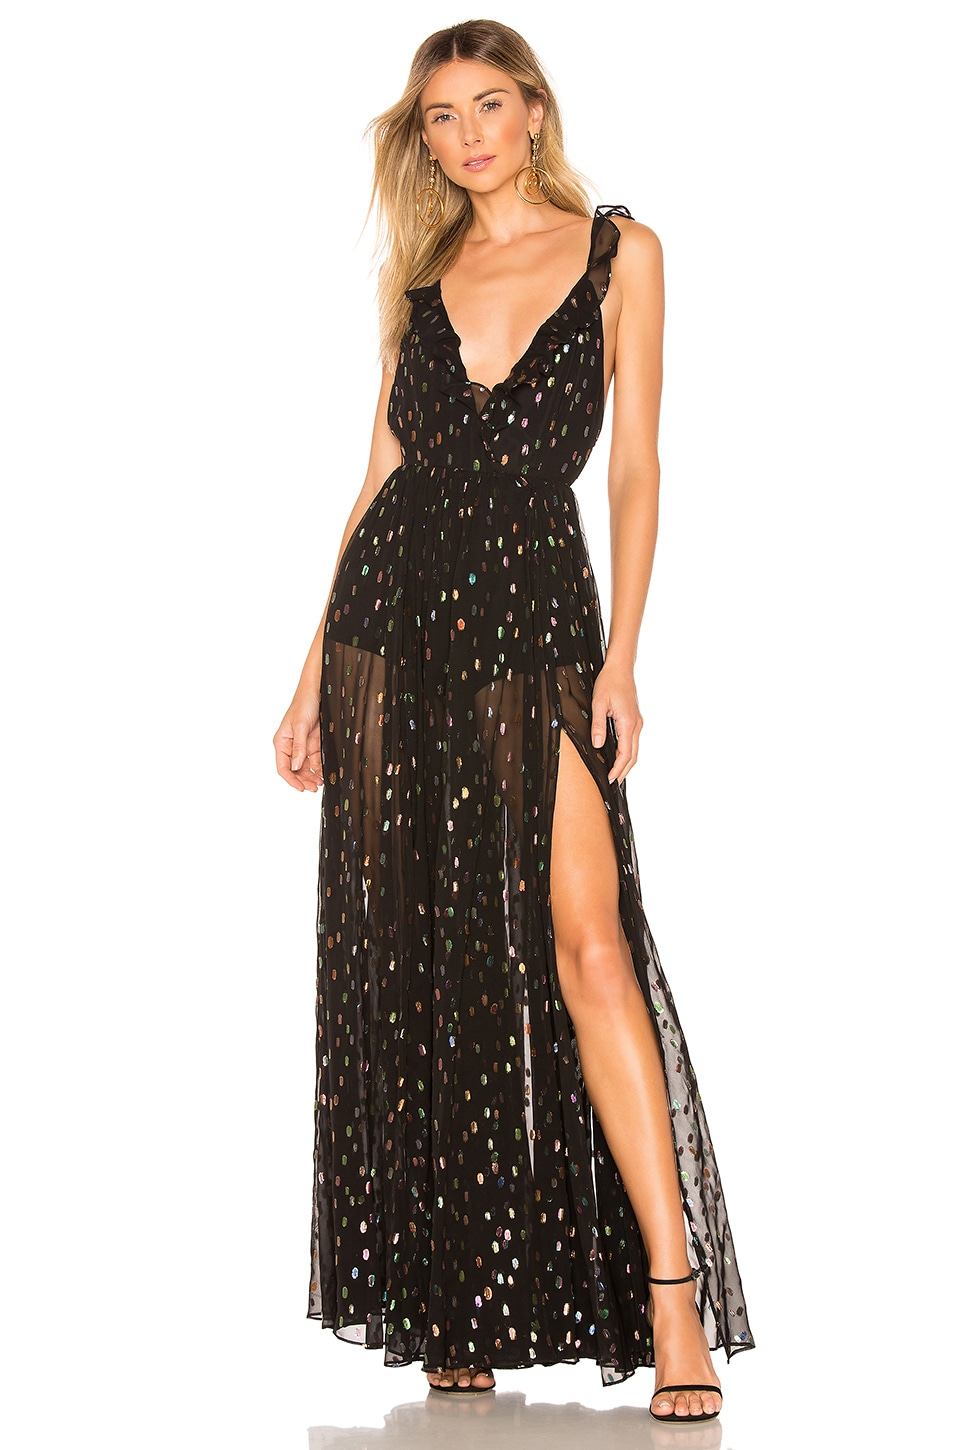 Michael Costello x REVOLVE Natalie Dress in Rainbow Dot